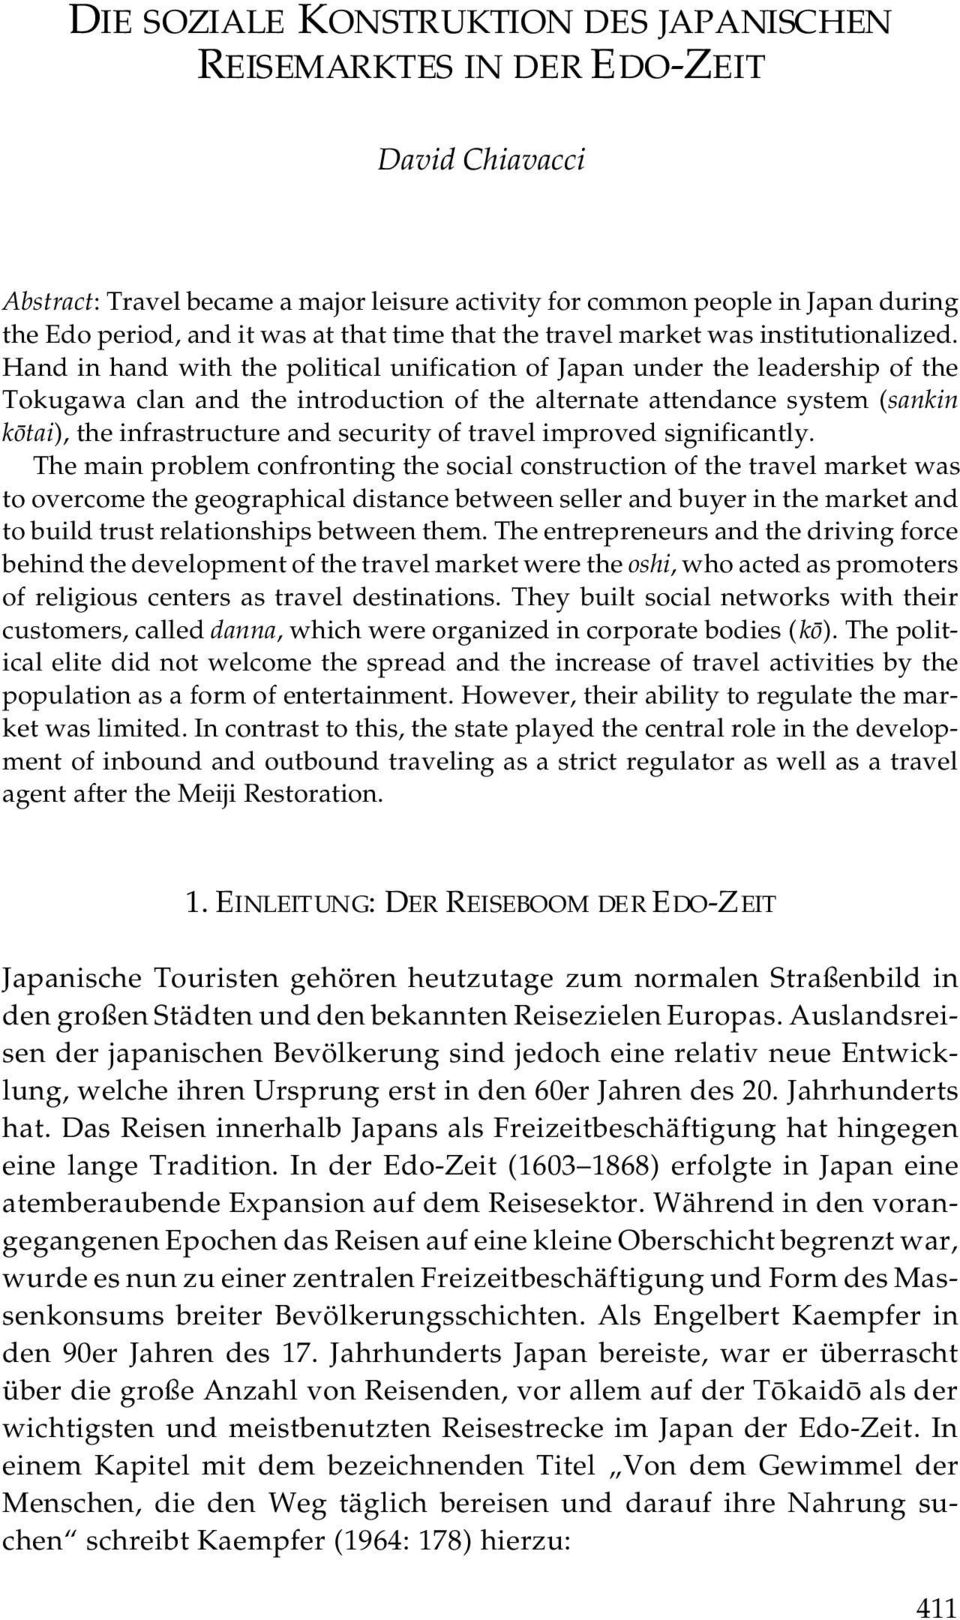 Hand in hand with the political unification of Japan under the leadership of the Tokugawa clan and the introduction of the alternate attendance system (sankin kôtai), the infrastructure and security